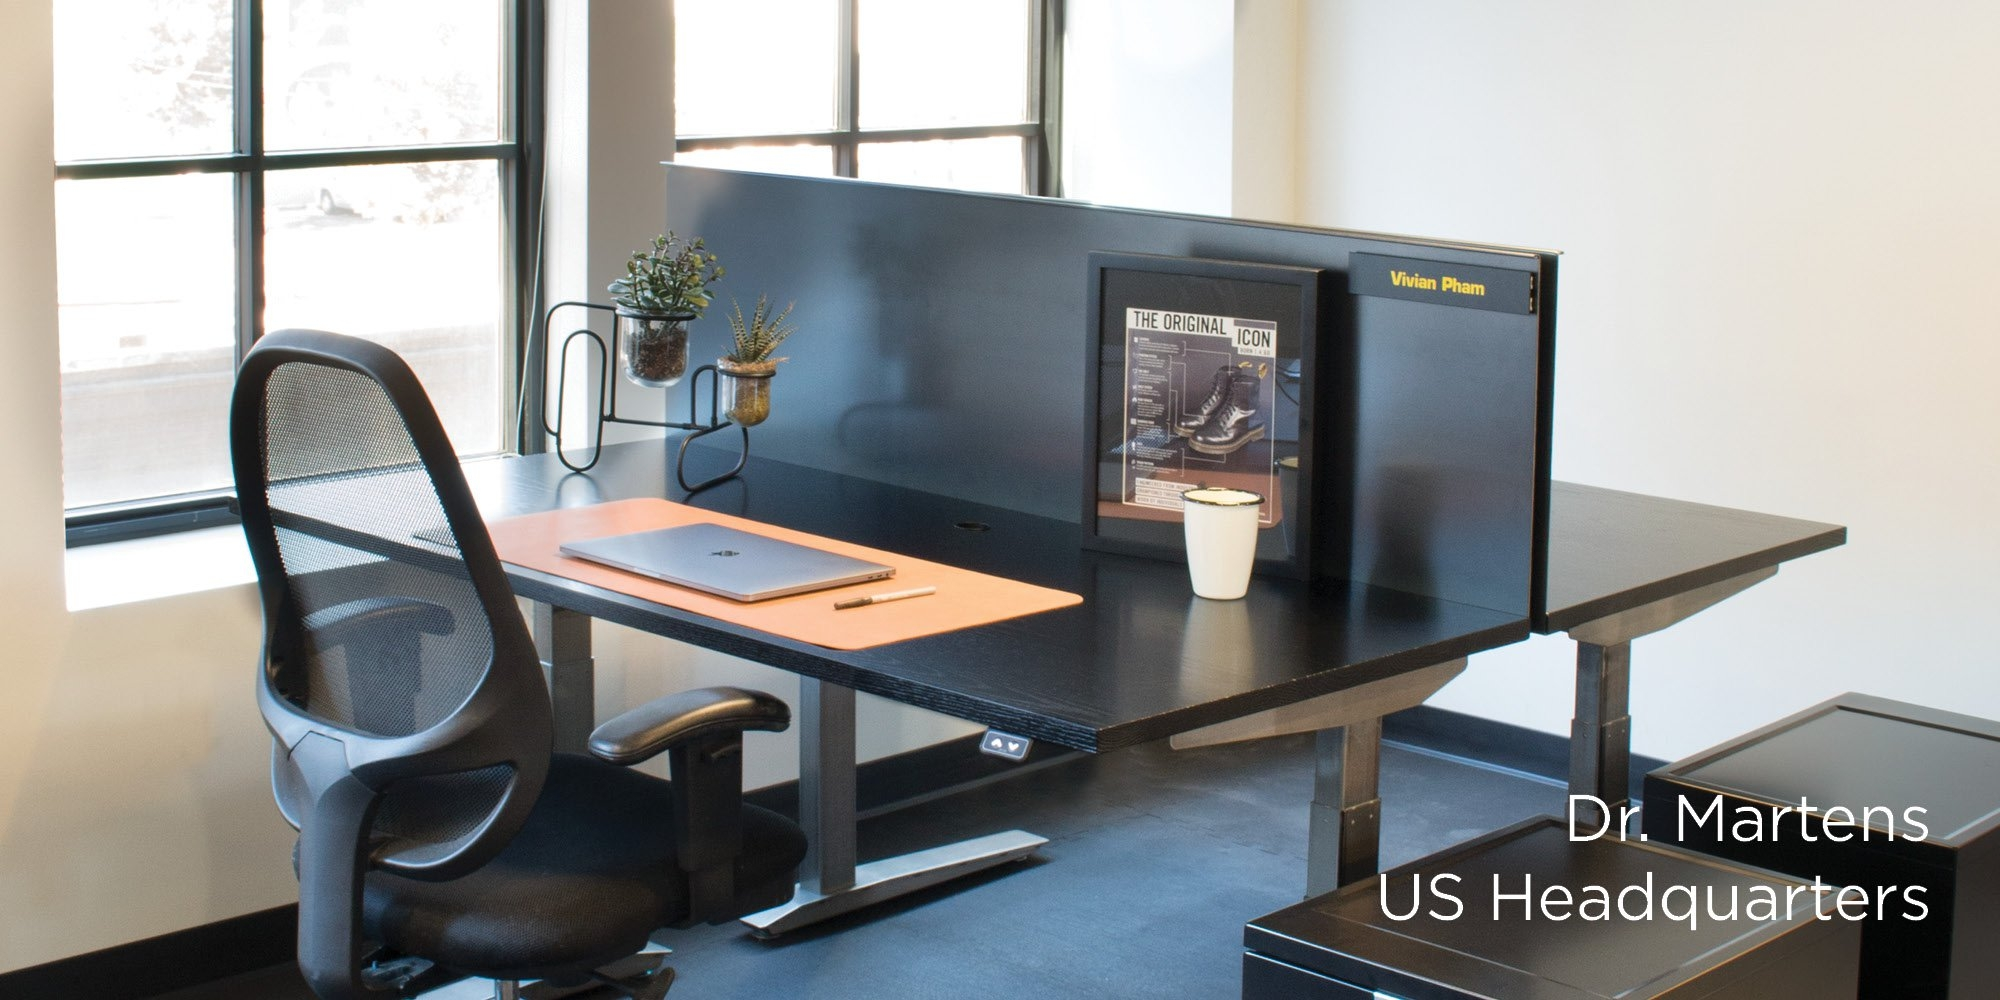 Dr. Martens Sit to Stand Desks with custom privacy panel